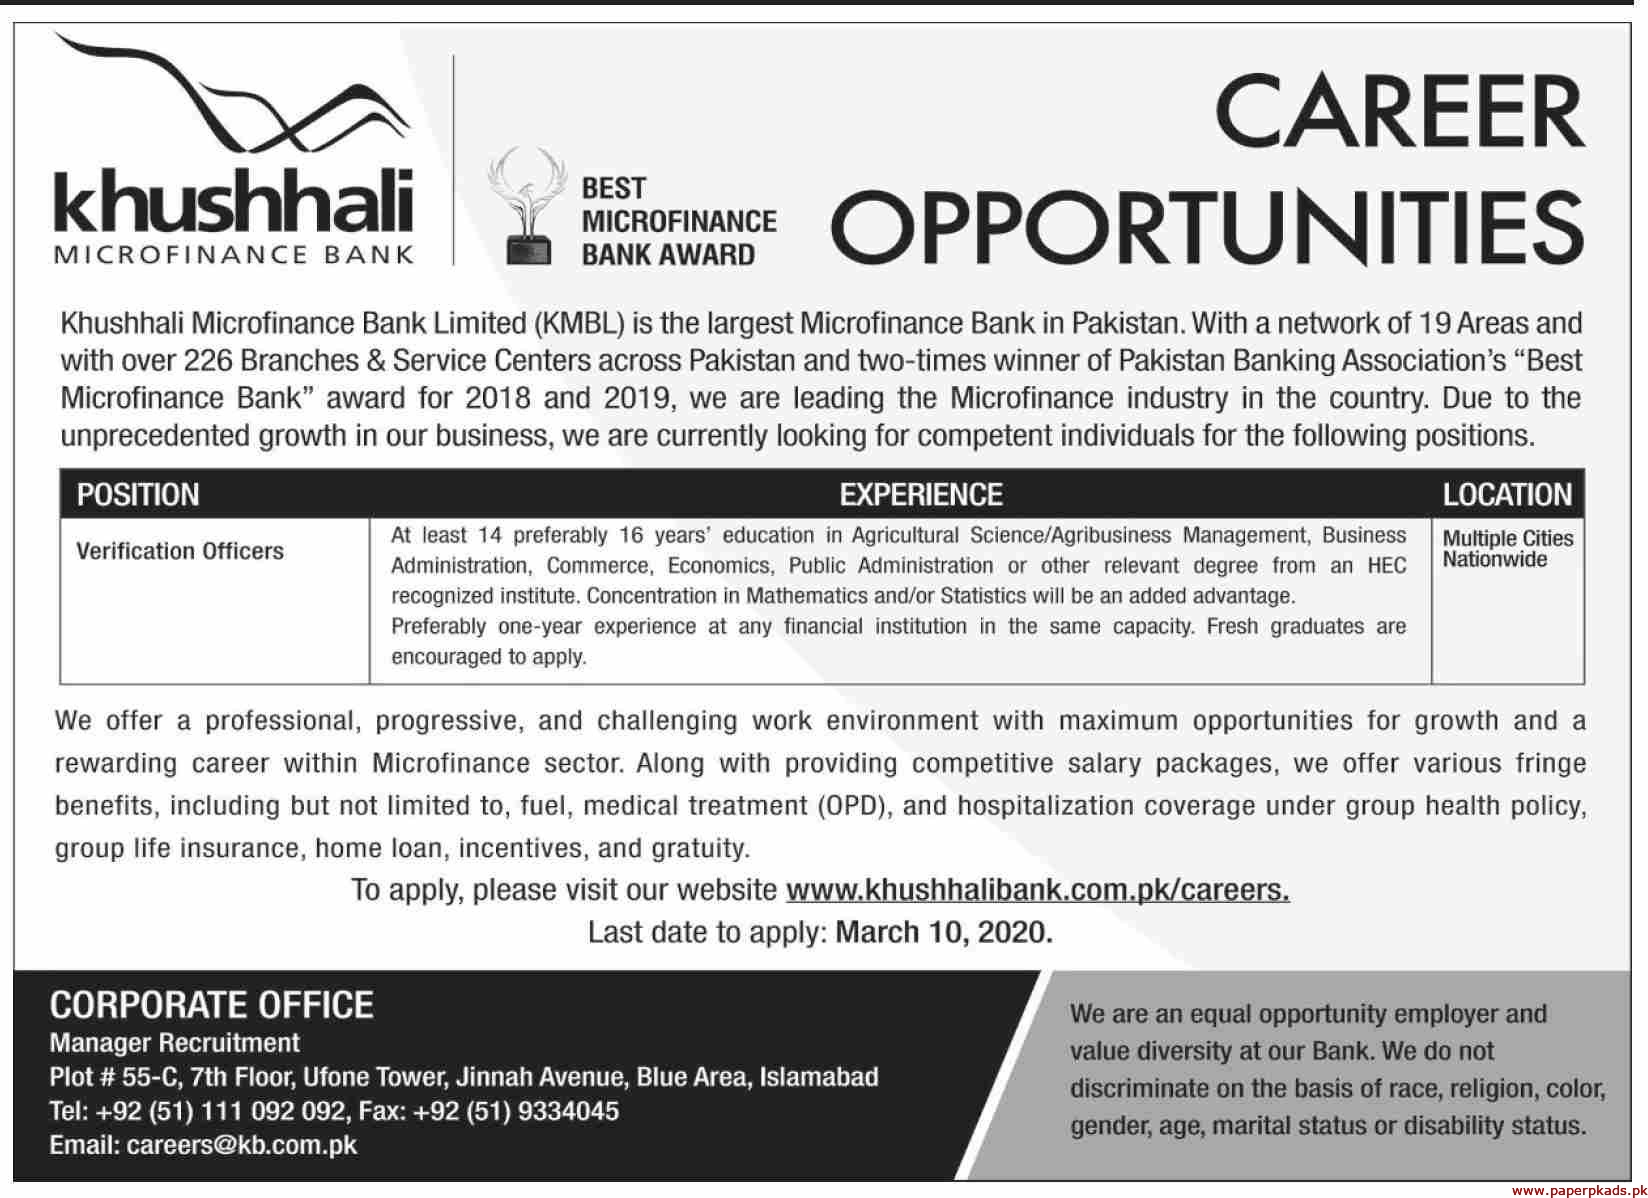 Khushhali Microfinance Bank Jobs 2020 Latest